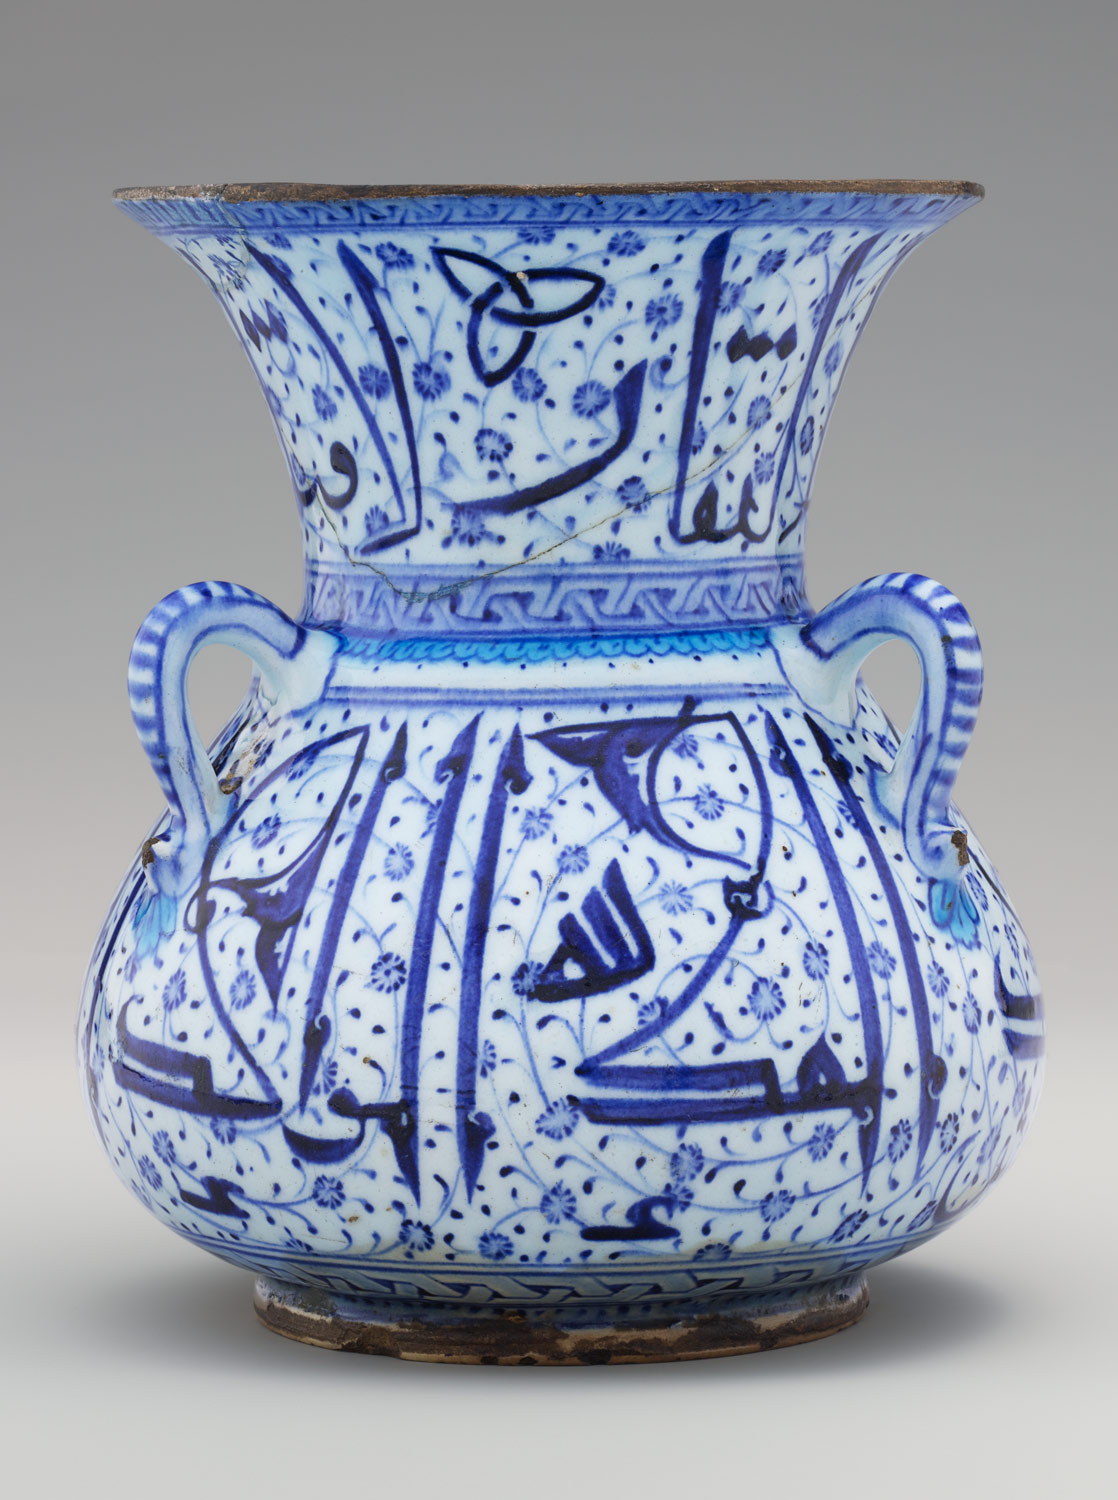 Mosque-lamp-shaped Vessel with Arabic Inscriptions